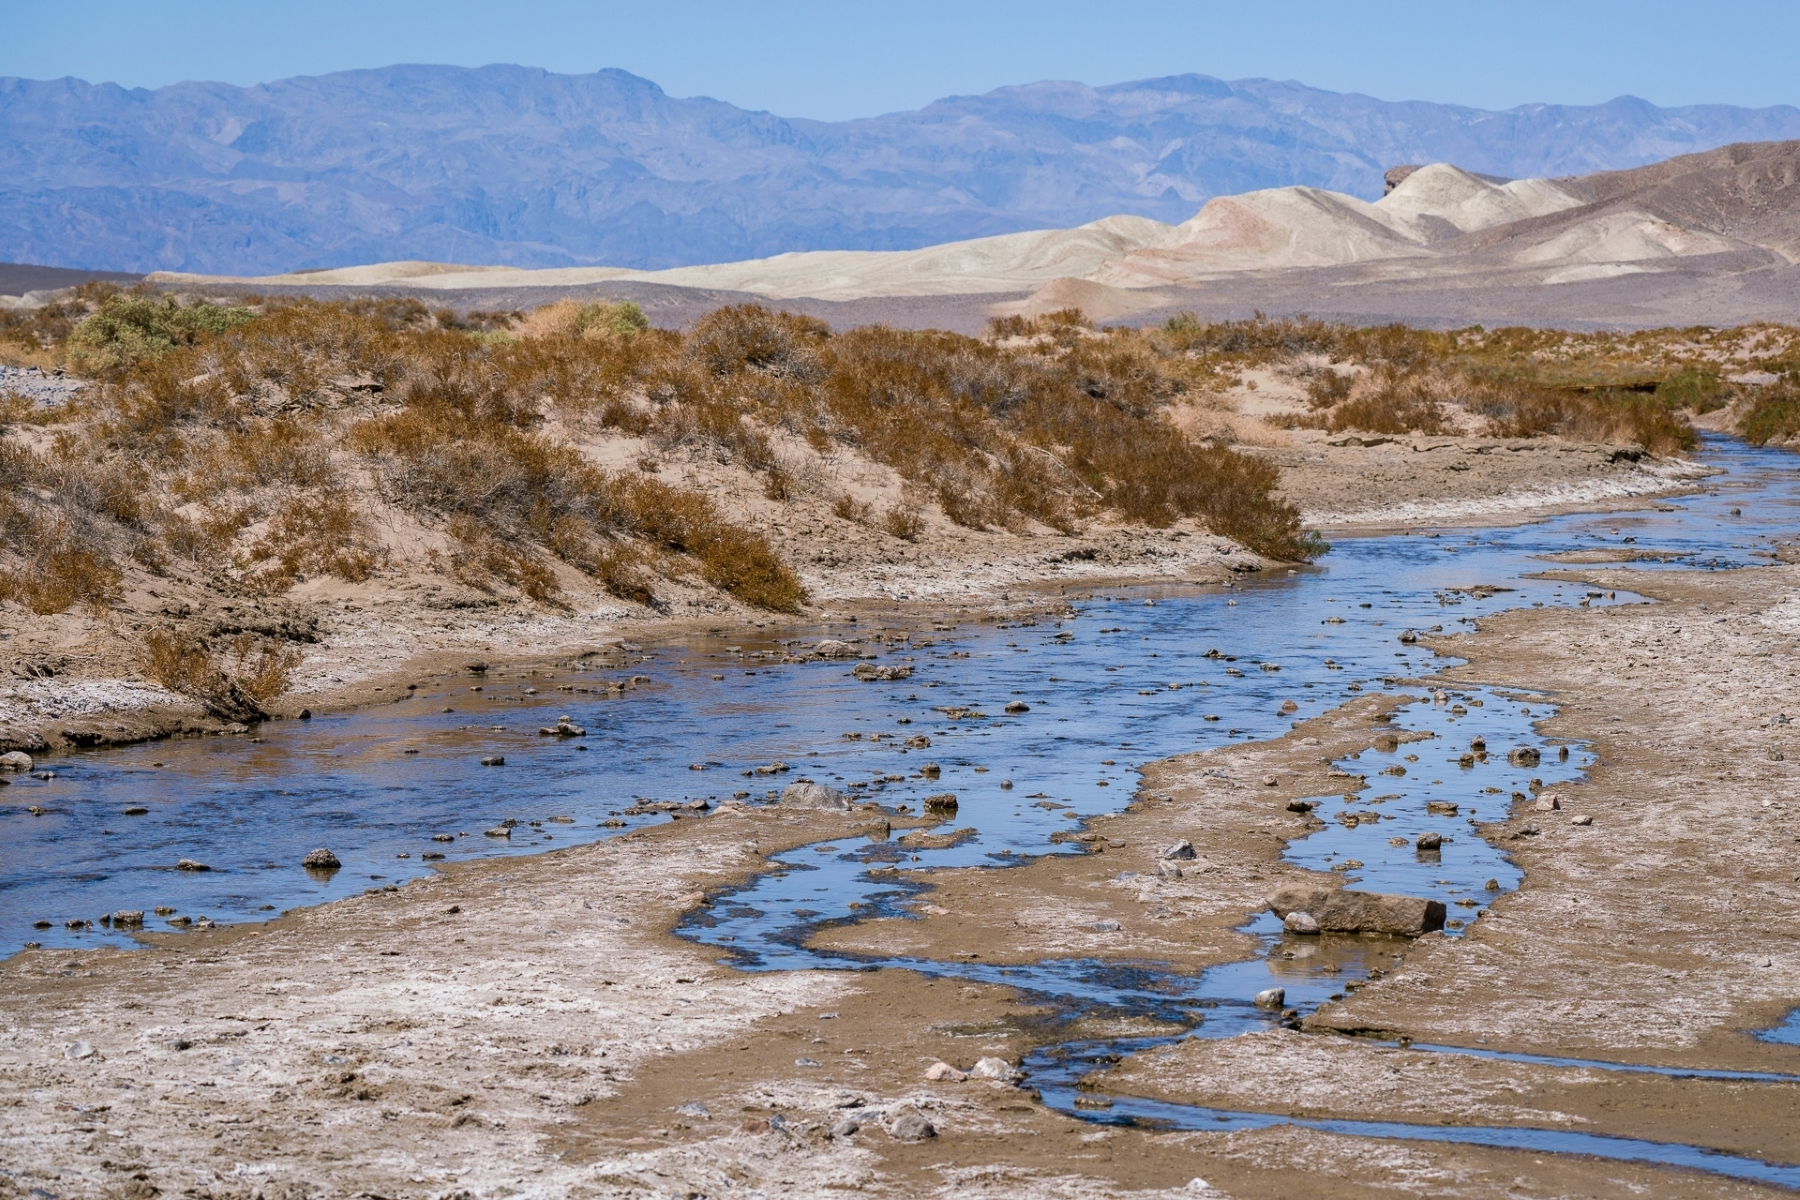 Salt-Creek-Pupfish-1-This-remnant-of-an-ancient-freshwater-lake-once-covering-much-of-Death-Valley-converted-to-salt.-NA-Best-in-Division-by-Herbert-Gaidus-SR